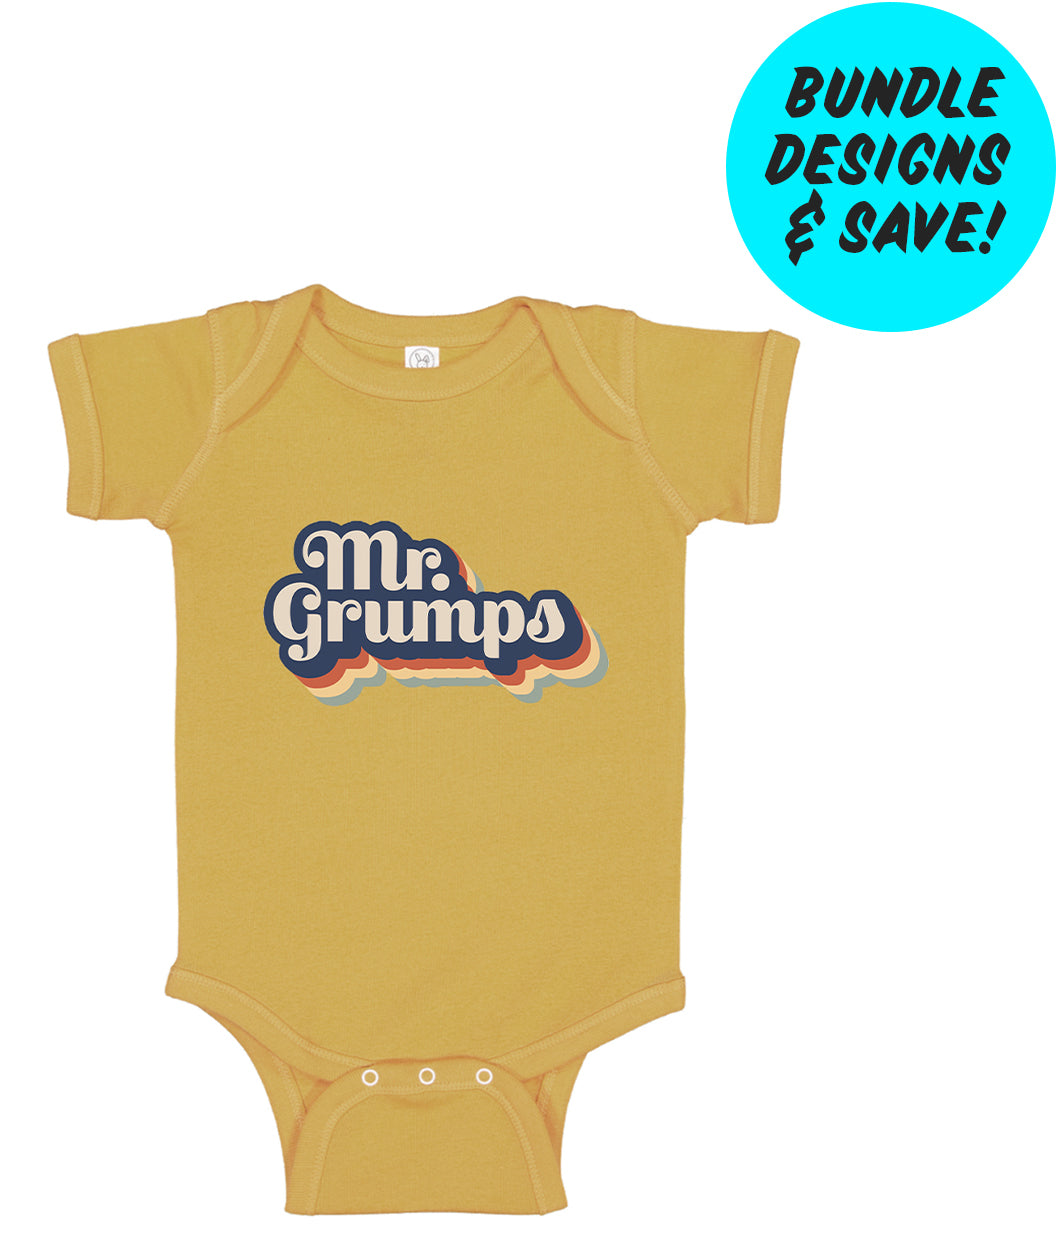 Mr. Grumps Onesie